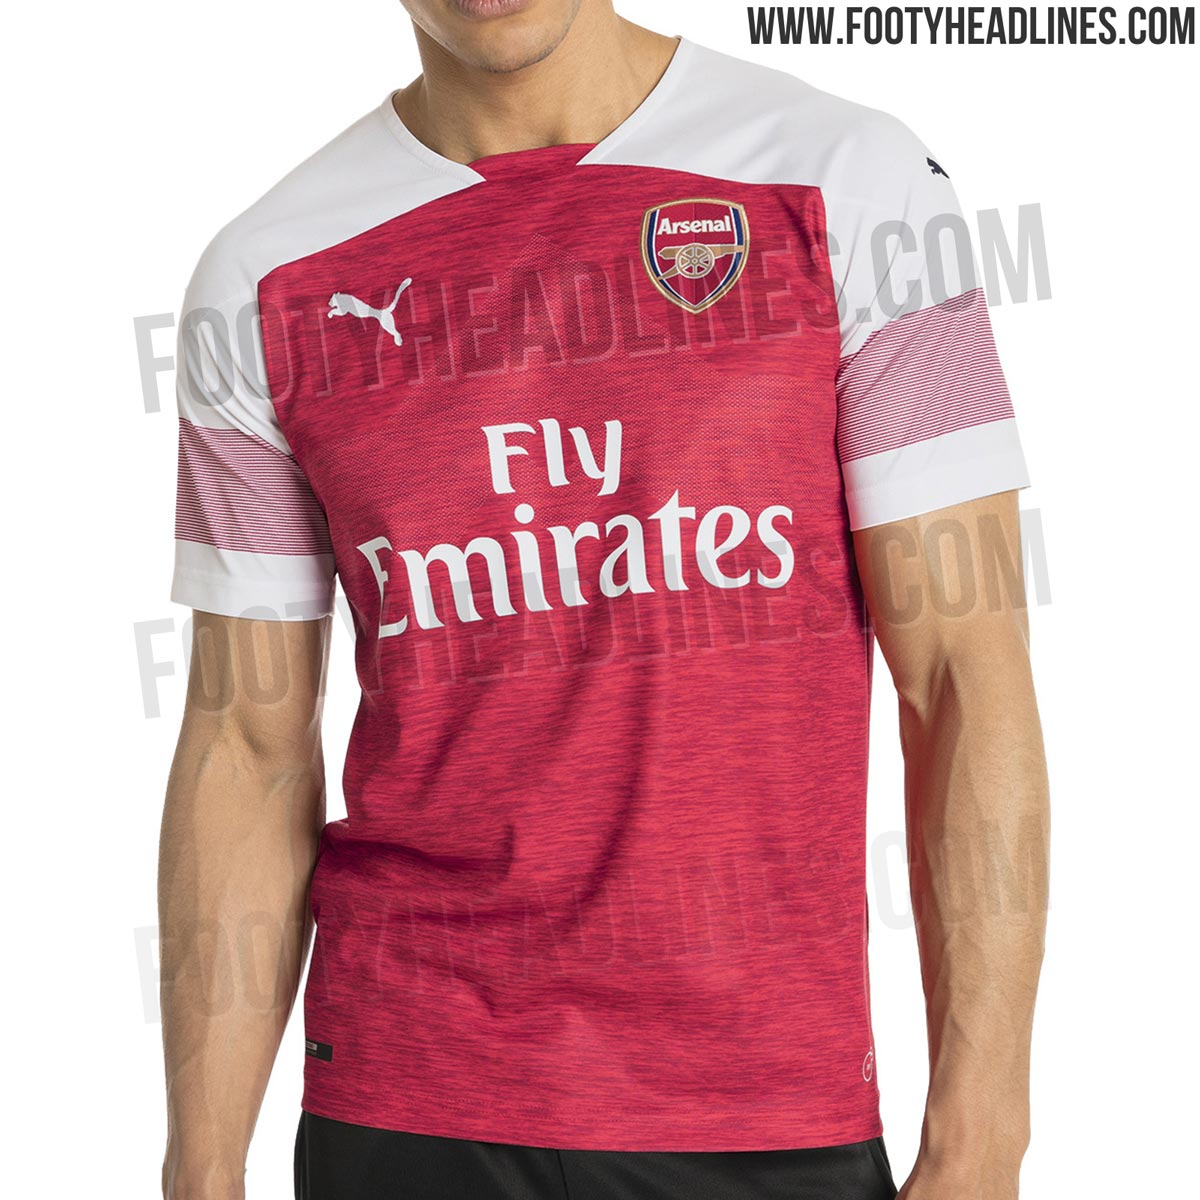 arsenal-18-19-home-kit-4.jpg